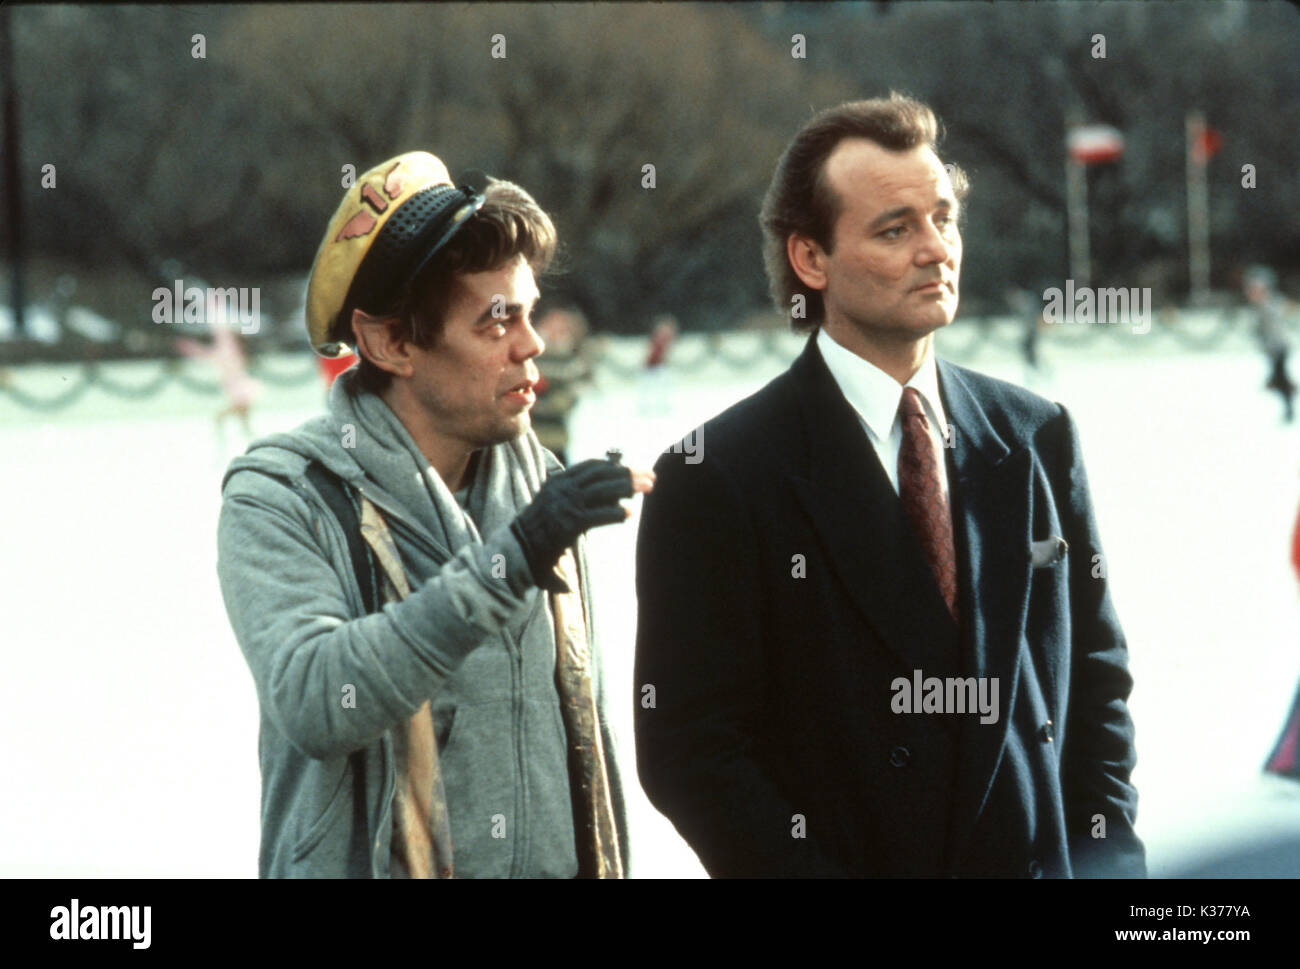 Scrooged Stock Photos & Scrooged Stock Images - Alamy